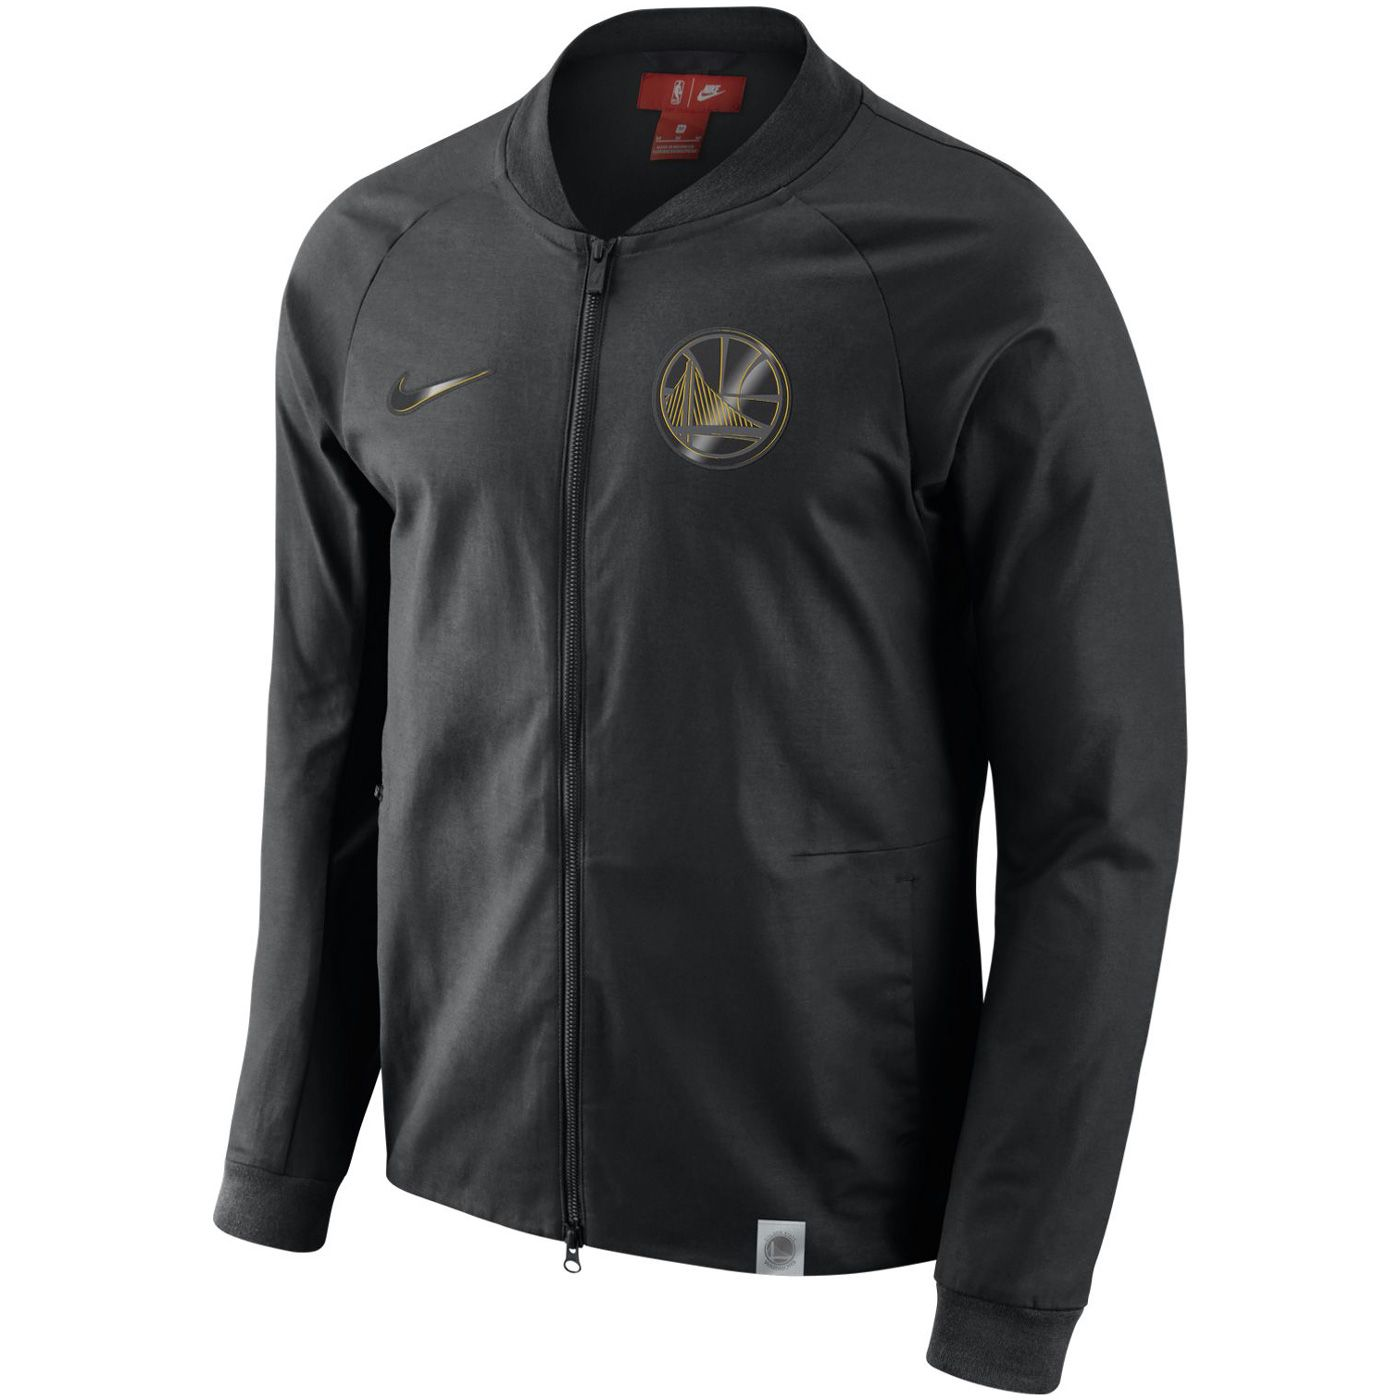 6167e3743 Nike 2019 NBA All-Star Weekend Men's Courtside Jacket - Black | 2018 ...